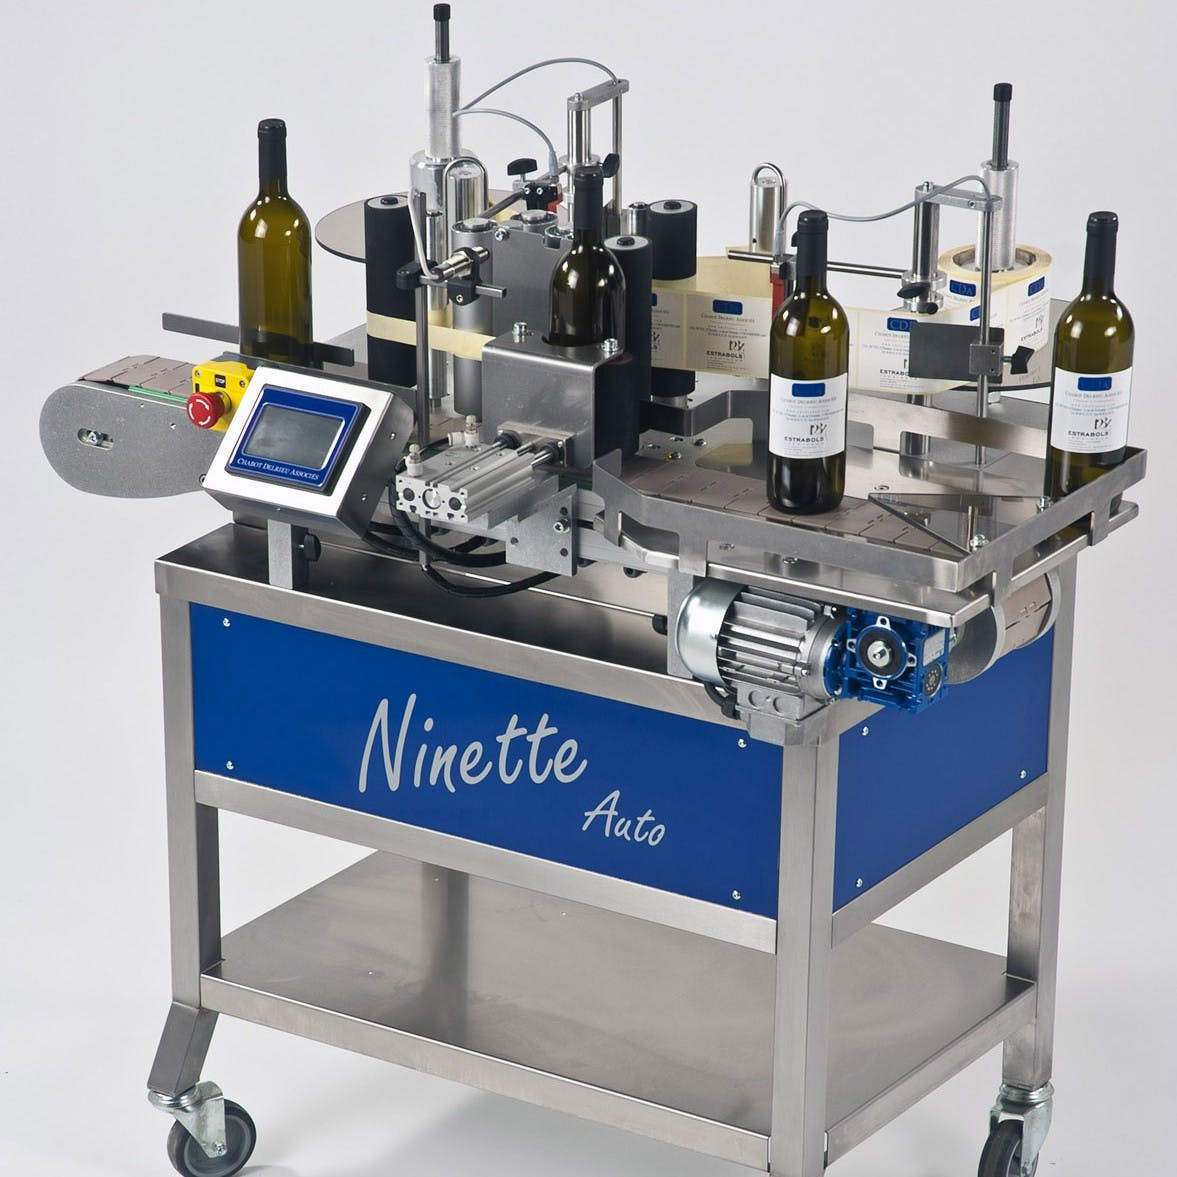 Bottle Labeler - CDA Ninette Auto Labeler for Wine Bottles Bottle labeler sold by Package Devices LLC